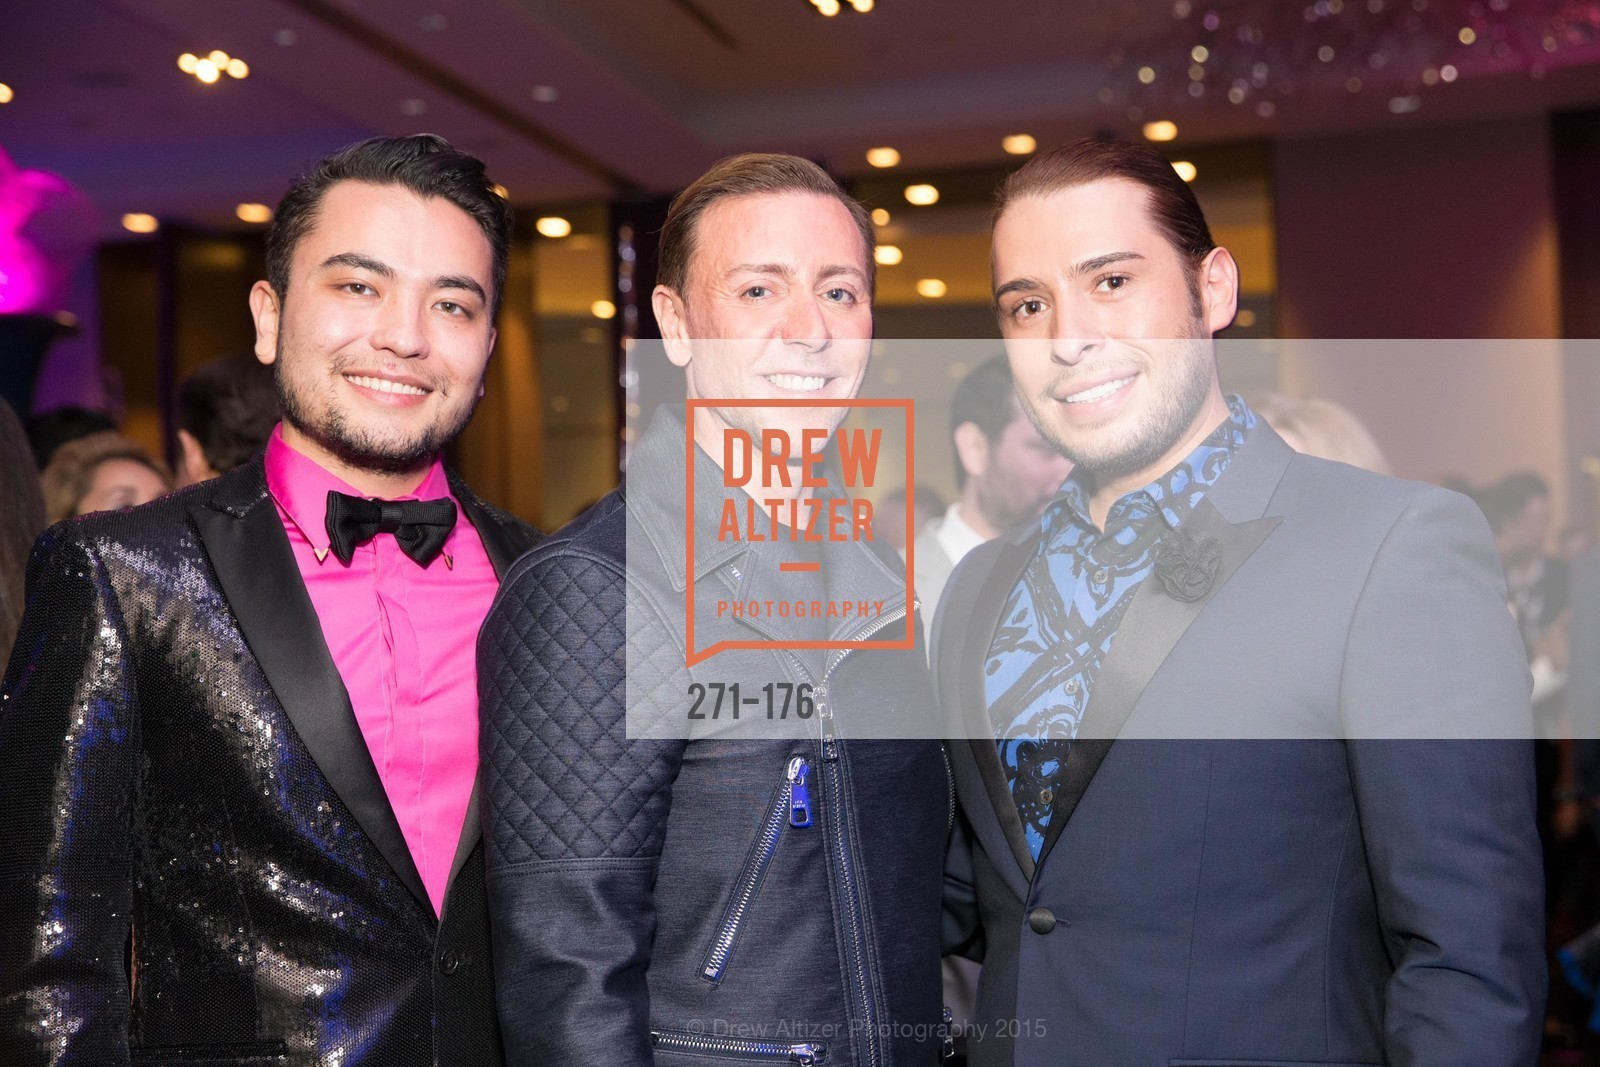 Grant Sumida, Mark Rhoades, Hector Vargas, VIP Pride Celebration 2015, St. Regis, June 18th, 2015,Drew Altizer, Drew Altizer Photography, full-service agency, private events, San Francisco photographer, photographer california